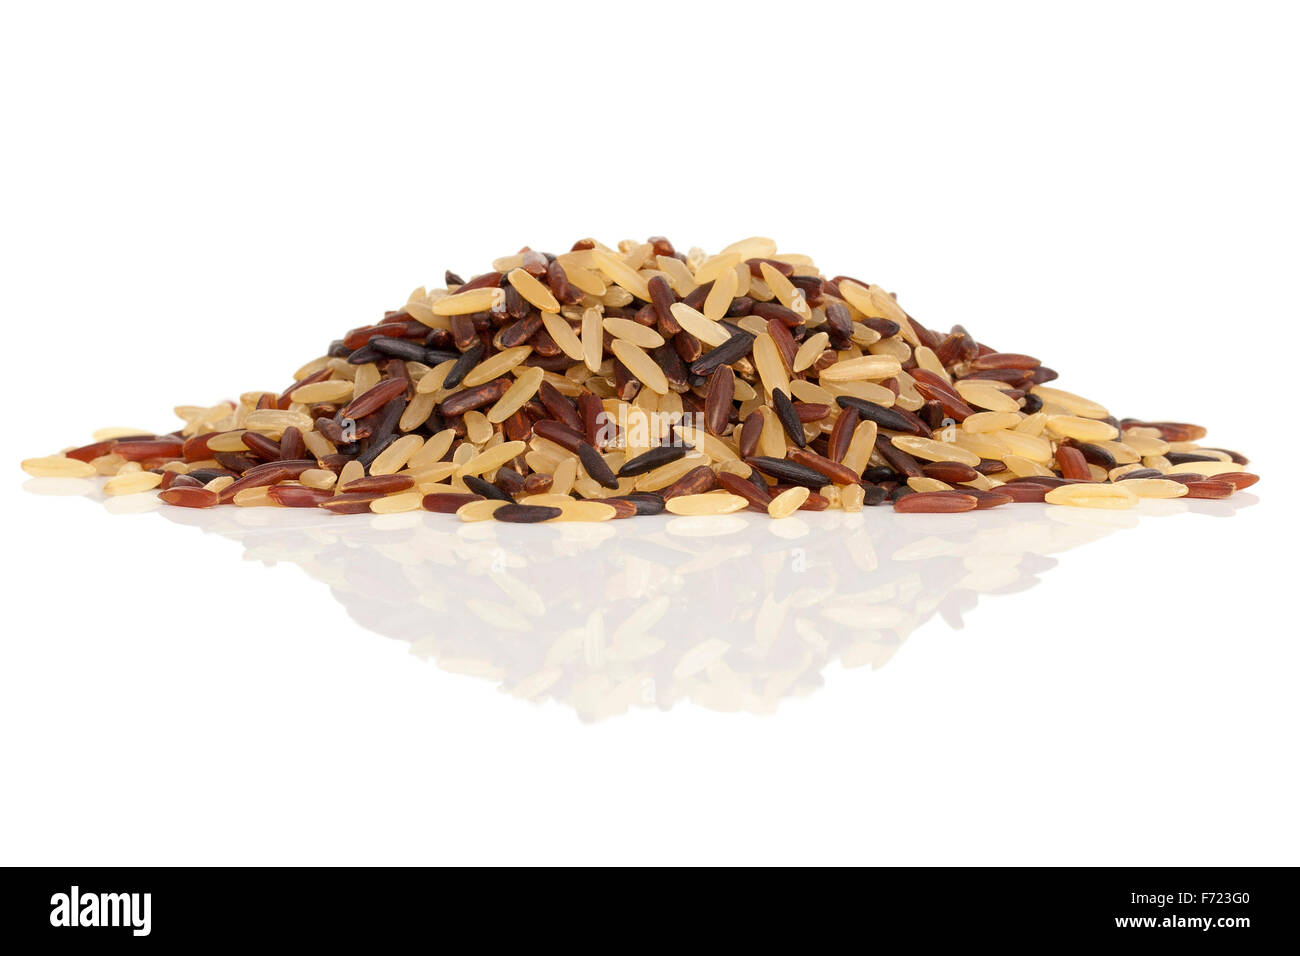 Wild rice mix isolated on a white background - Stock Image